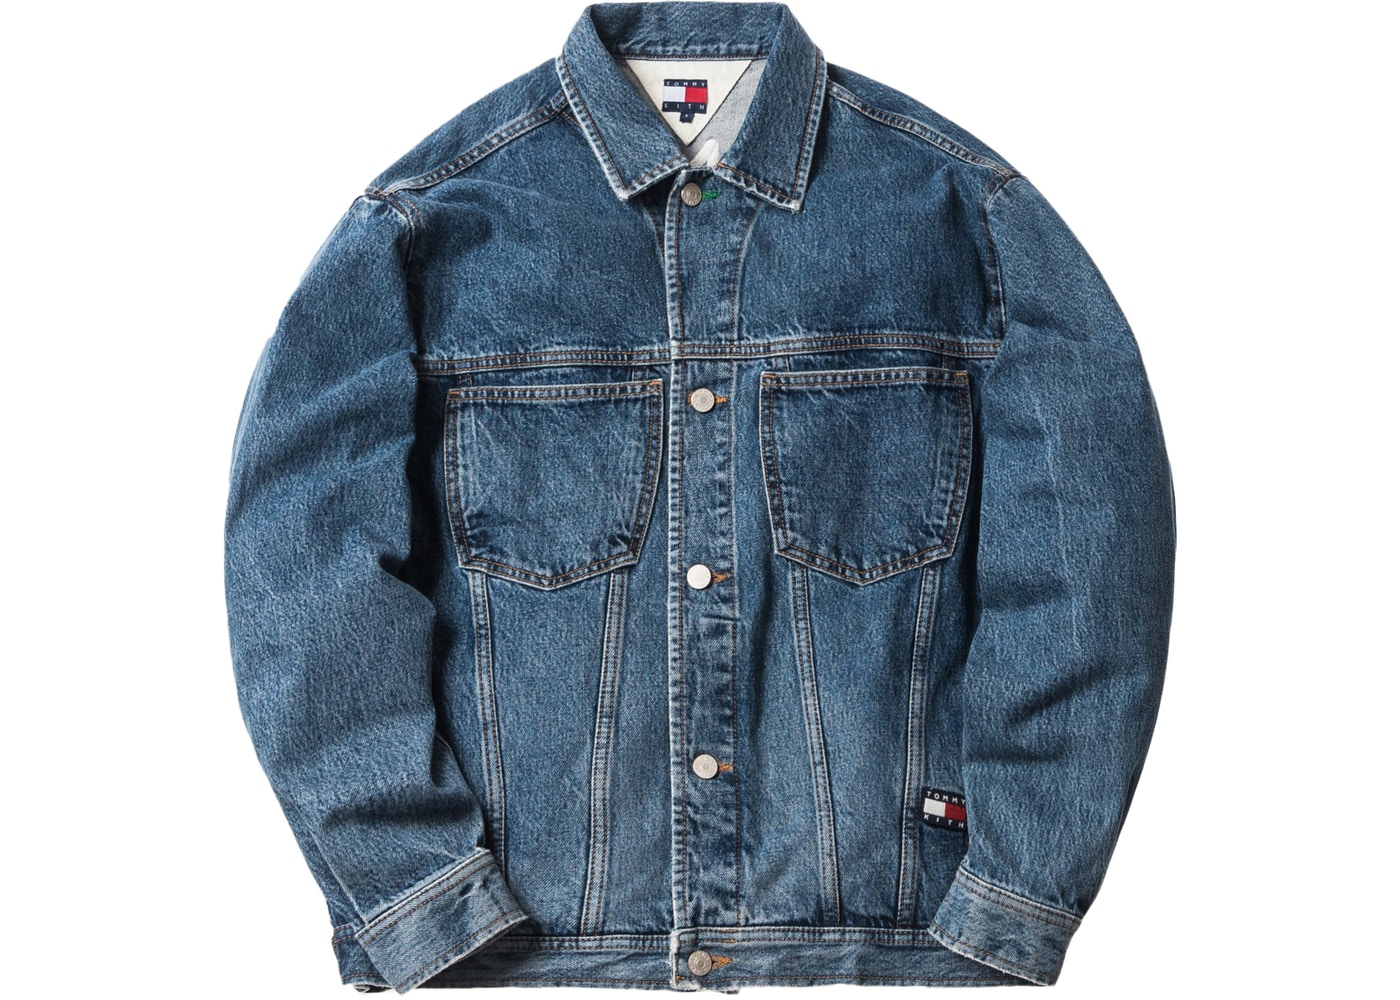 43f82201 Kith x Tommy Hilfiger Denim Trucker Jacket Vintage Blue - FW18